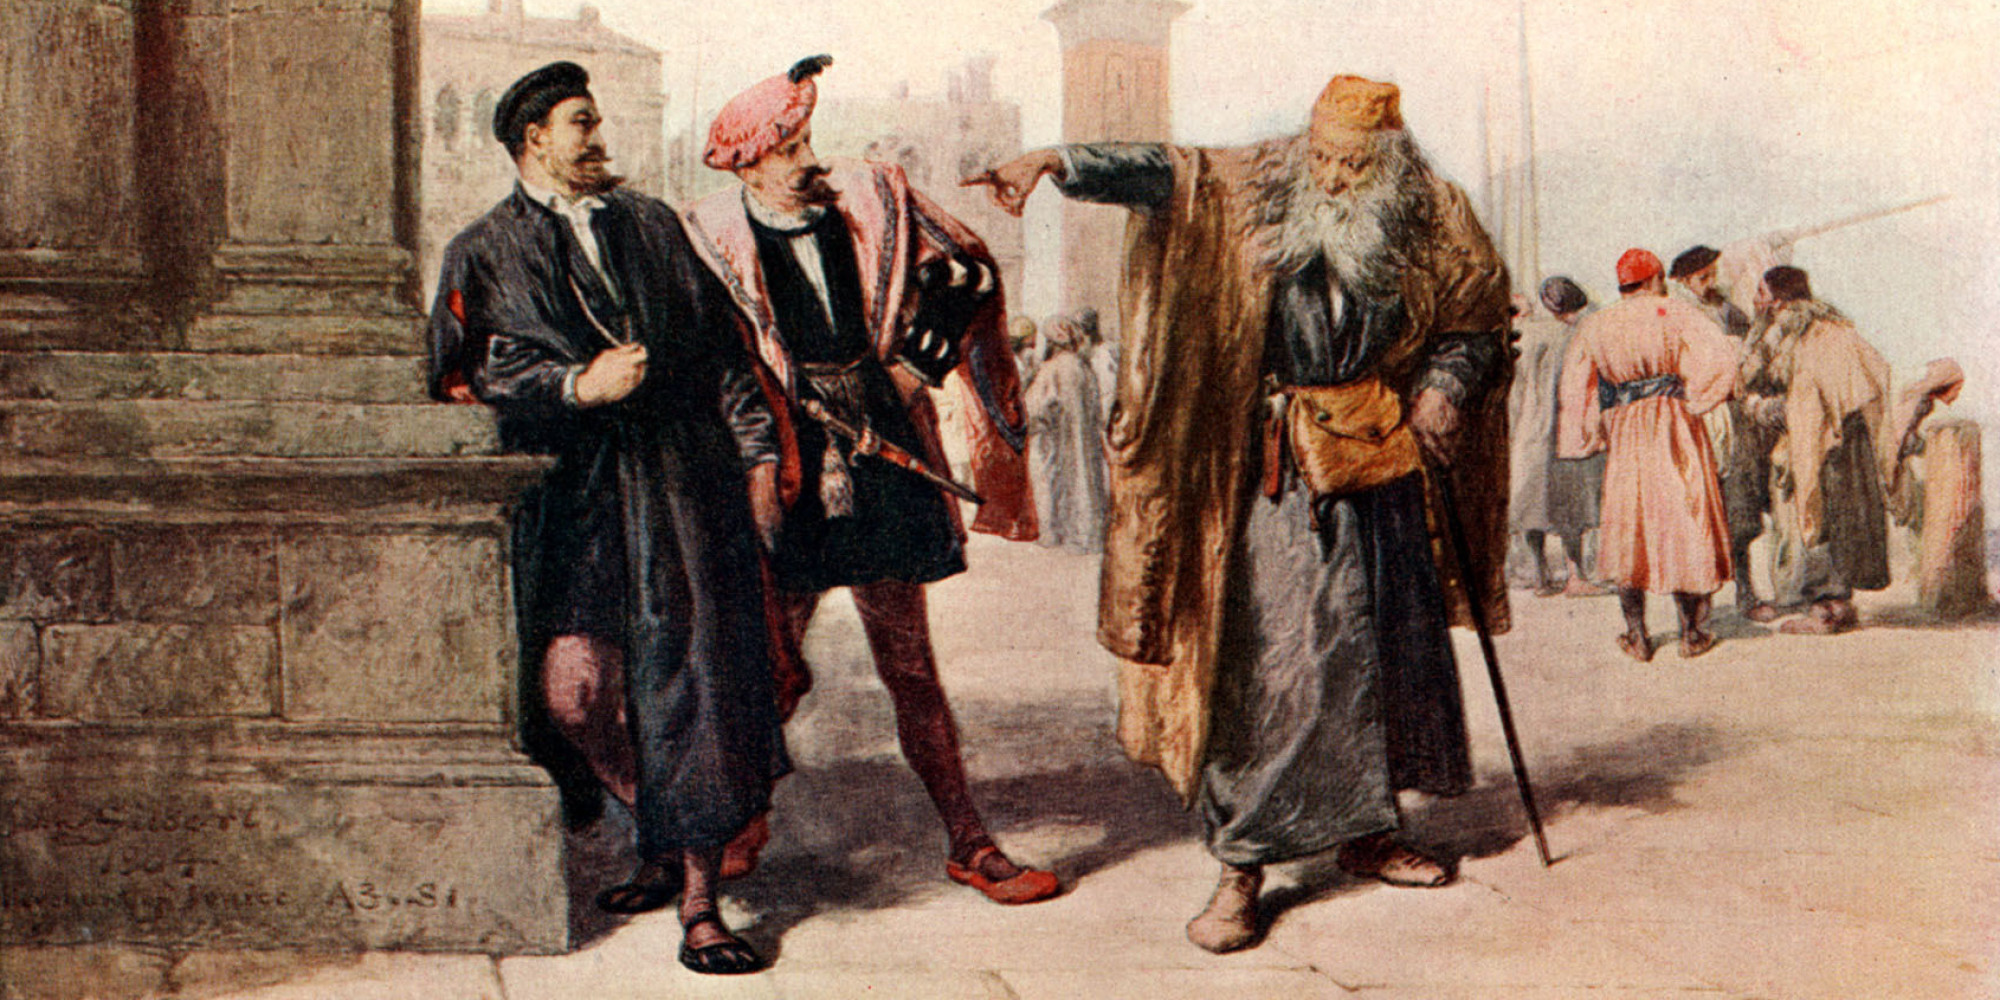 merchant of venice anti semitism The question of whether or not shakespeare endorses the anti-semitism of the christian characters in the play has been much debated jews in shakespeare's england were a marginalized group, and shakespeare's contemporaries would have been very familiar with portrayals of jews as villains and objects of mockery.